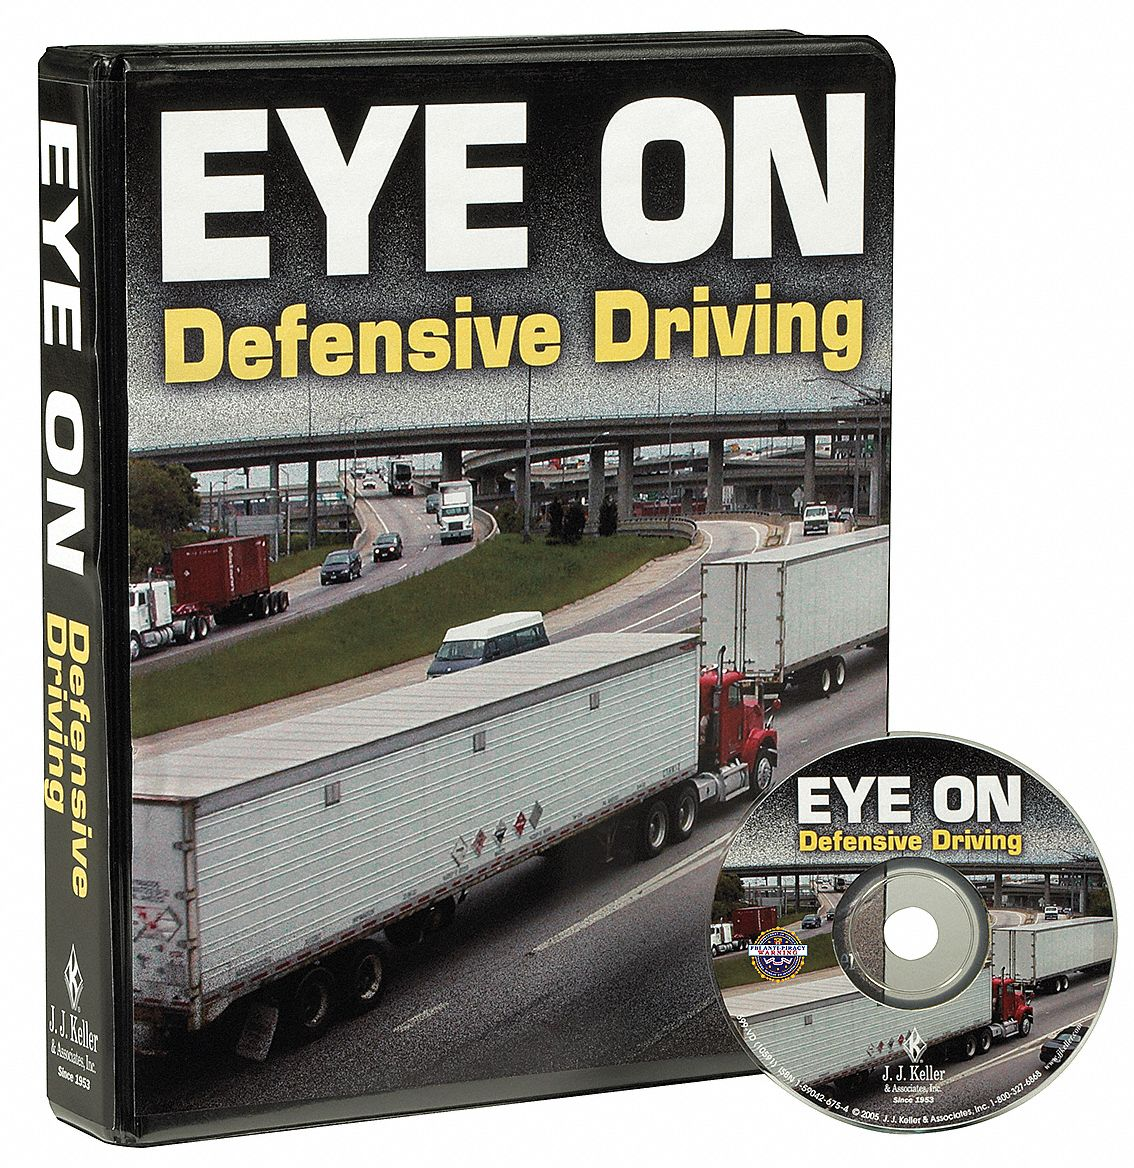 Safety Training Program,  DVD,  Driving Safety,  English,  73 min